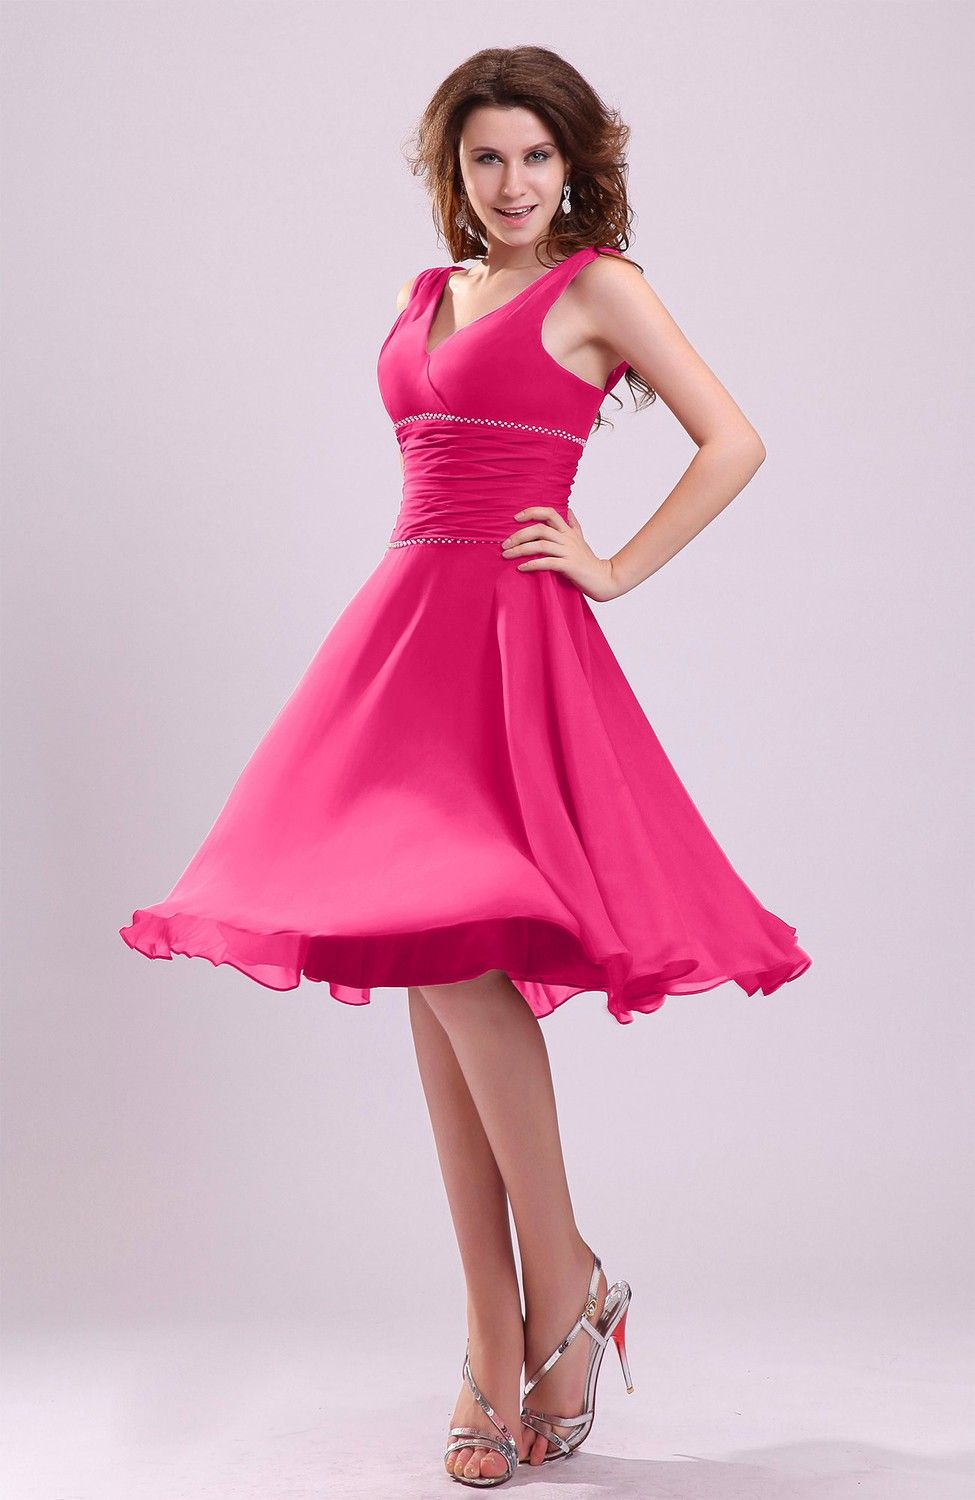 Short purple wedding dresses  Fuschia Bridesmaid Dress  Cute Aline Sleeveless Chiffon Knee